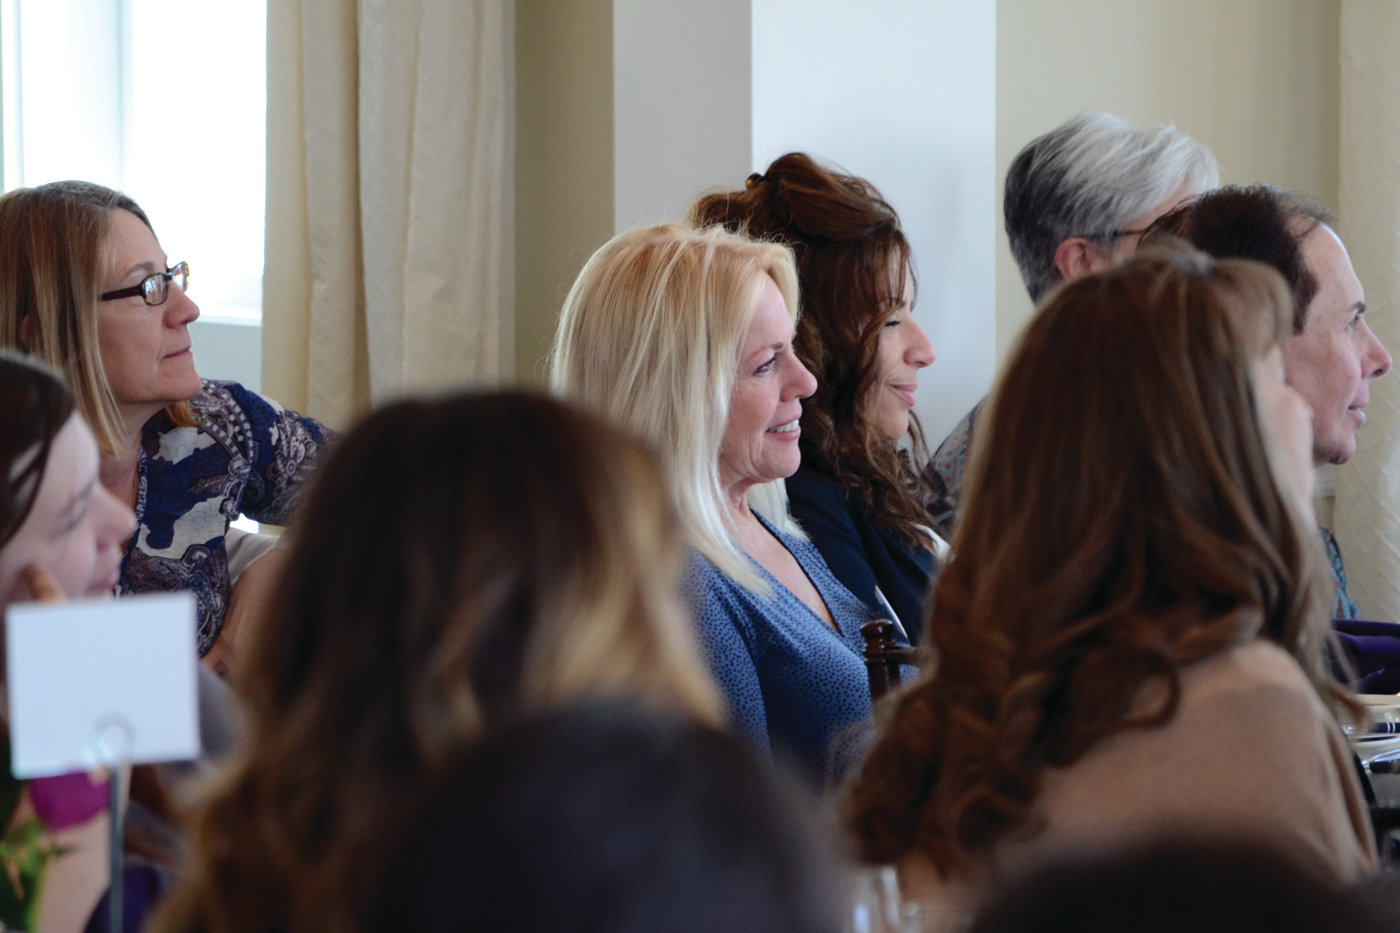 EXTENDING A HELPING HAND: Judith Earle, executive director of the Elizabeth Buffum Chace Center, smiles listening to Drea Kelly give her talk on surviving domestic abuse.